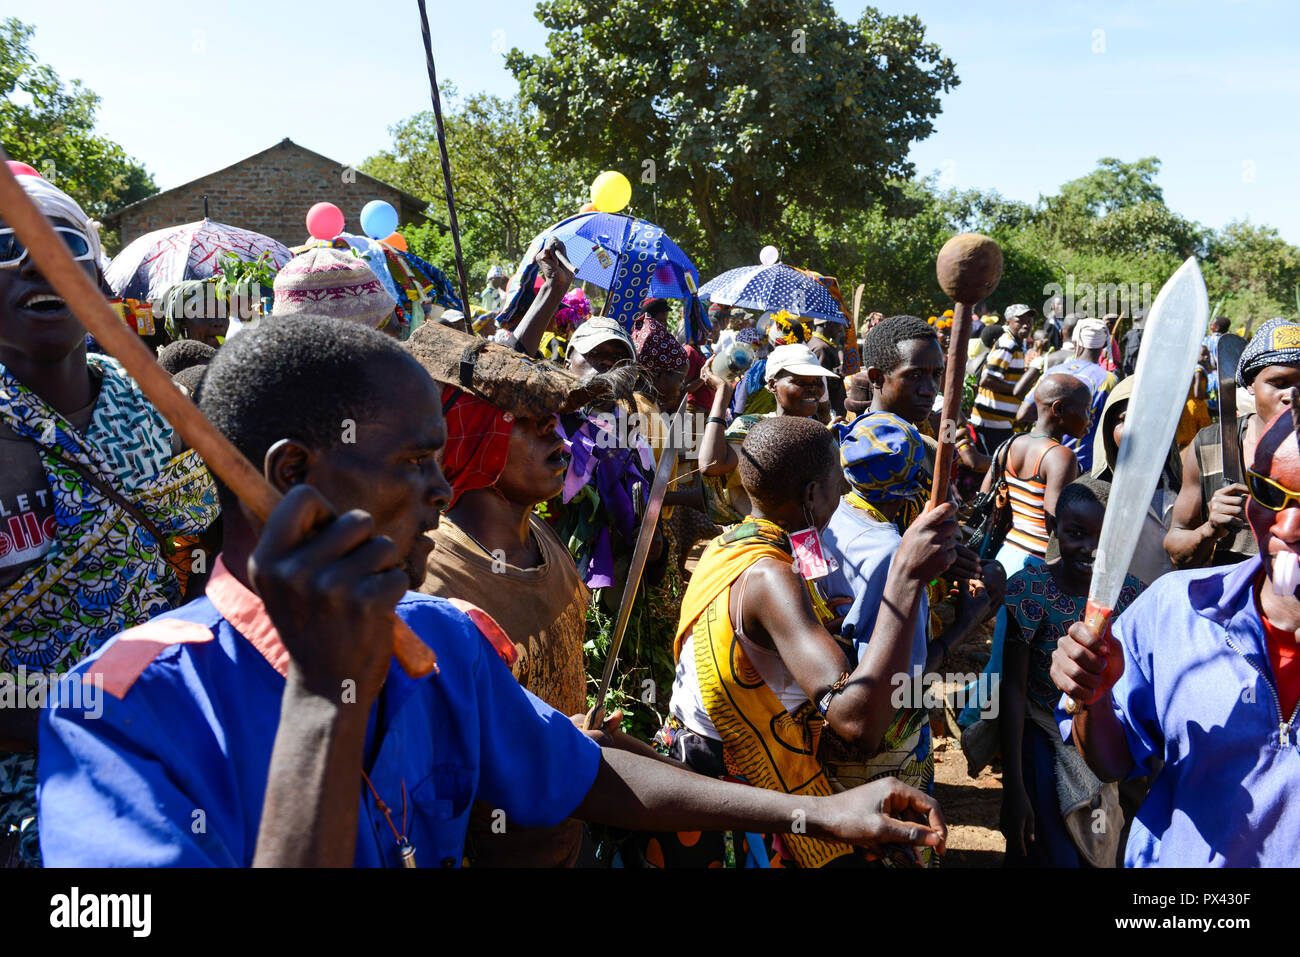 TANZANIA Mara, Tarime, village Masanga, region of the Kuria tribe who practise FGM Female Genital Mutilation, procession to cutting place during cutting season / TANSANIA Mara, Tarime, Dorf Masanga, in der Region lebt der Kuria Tribe, der FGM praktiziert, Prozession zum Beschneidungsplatz - Stock Image